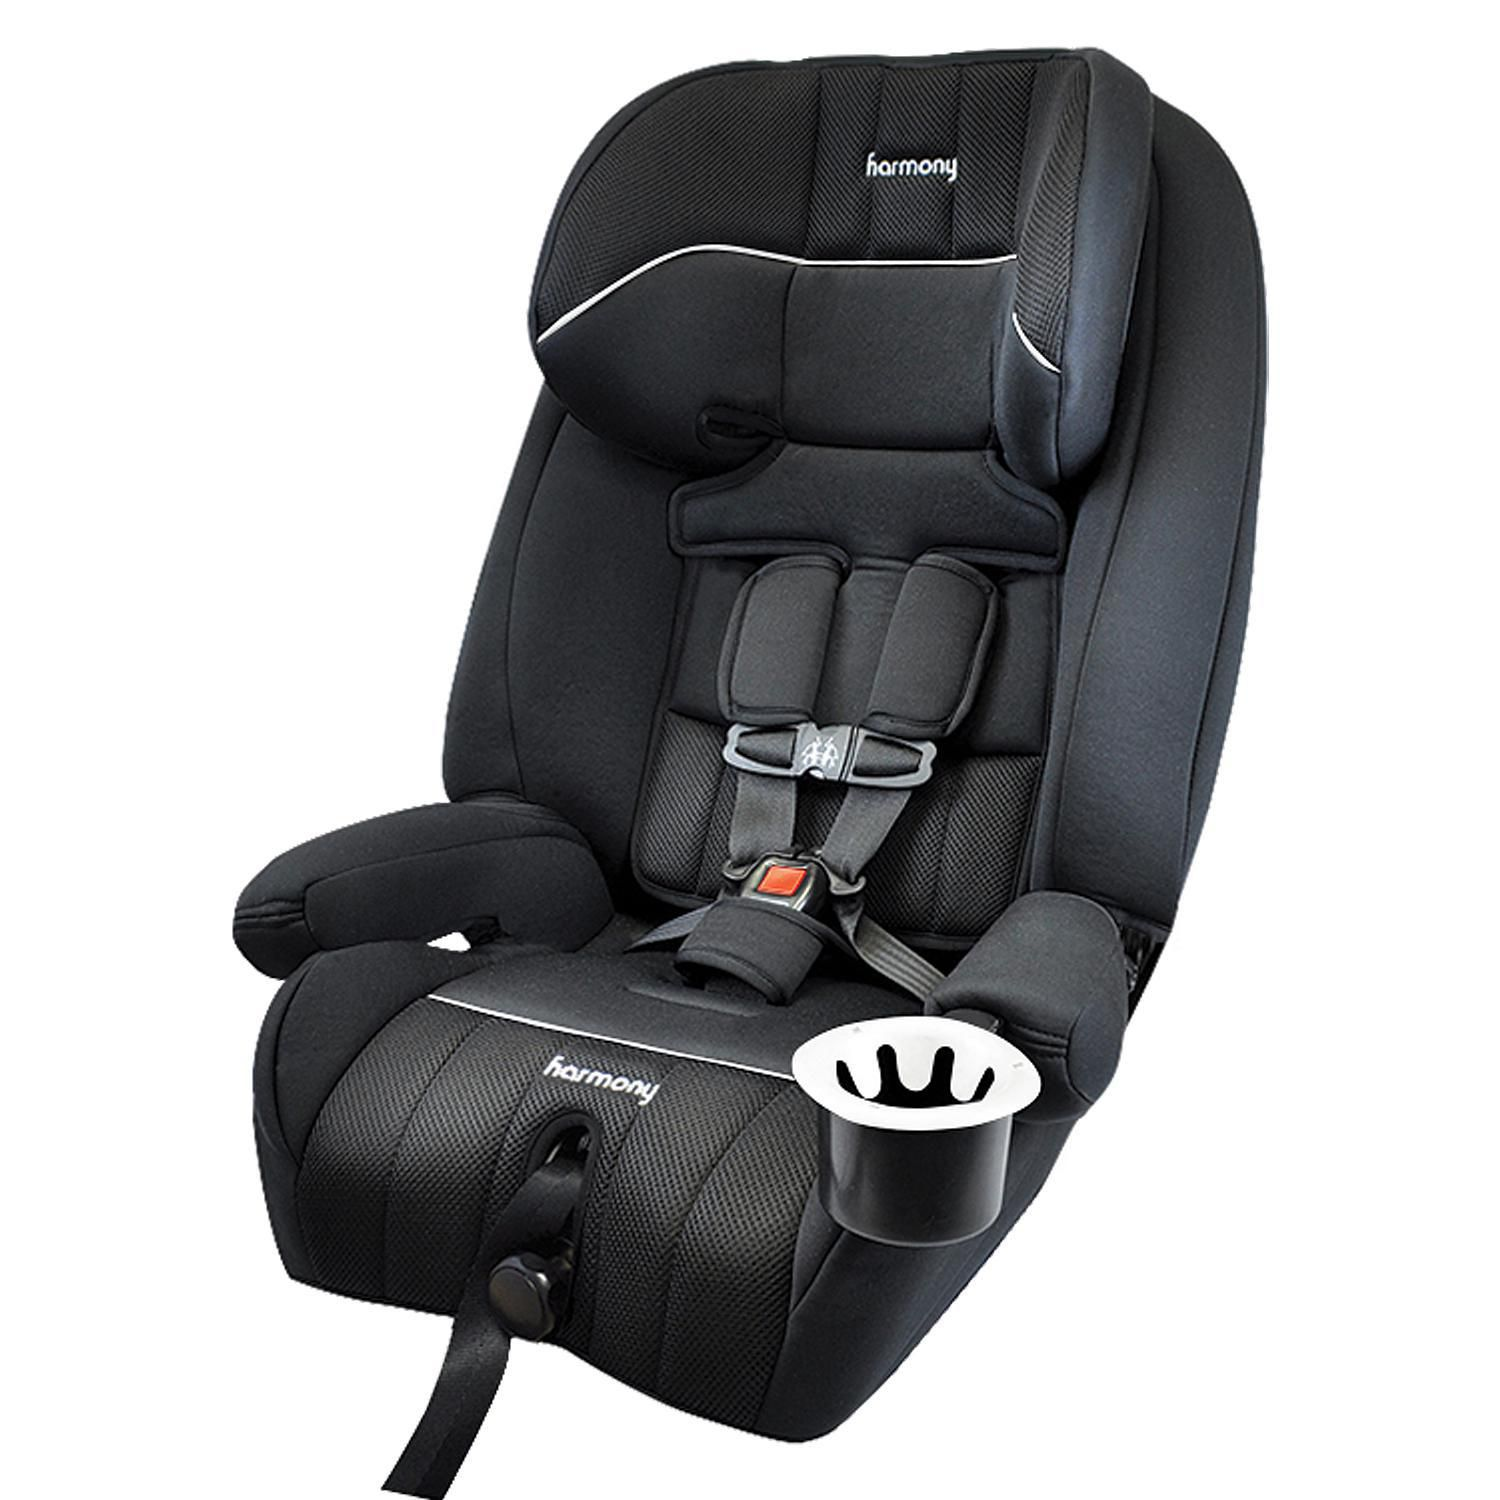 Harmony Defender 360° 3-in-1 Combination Deluxe booster car seat - best booster car seat